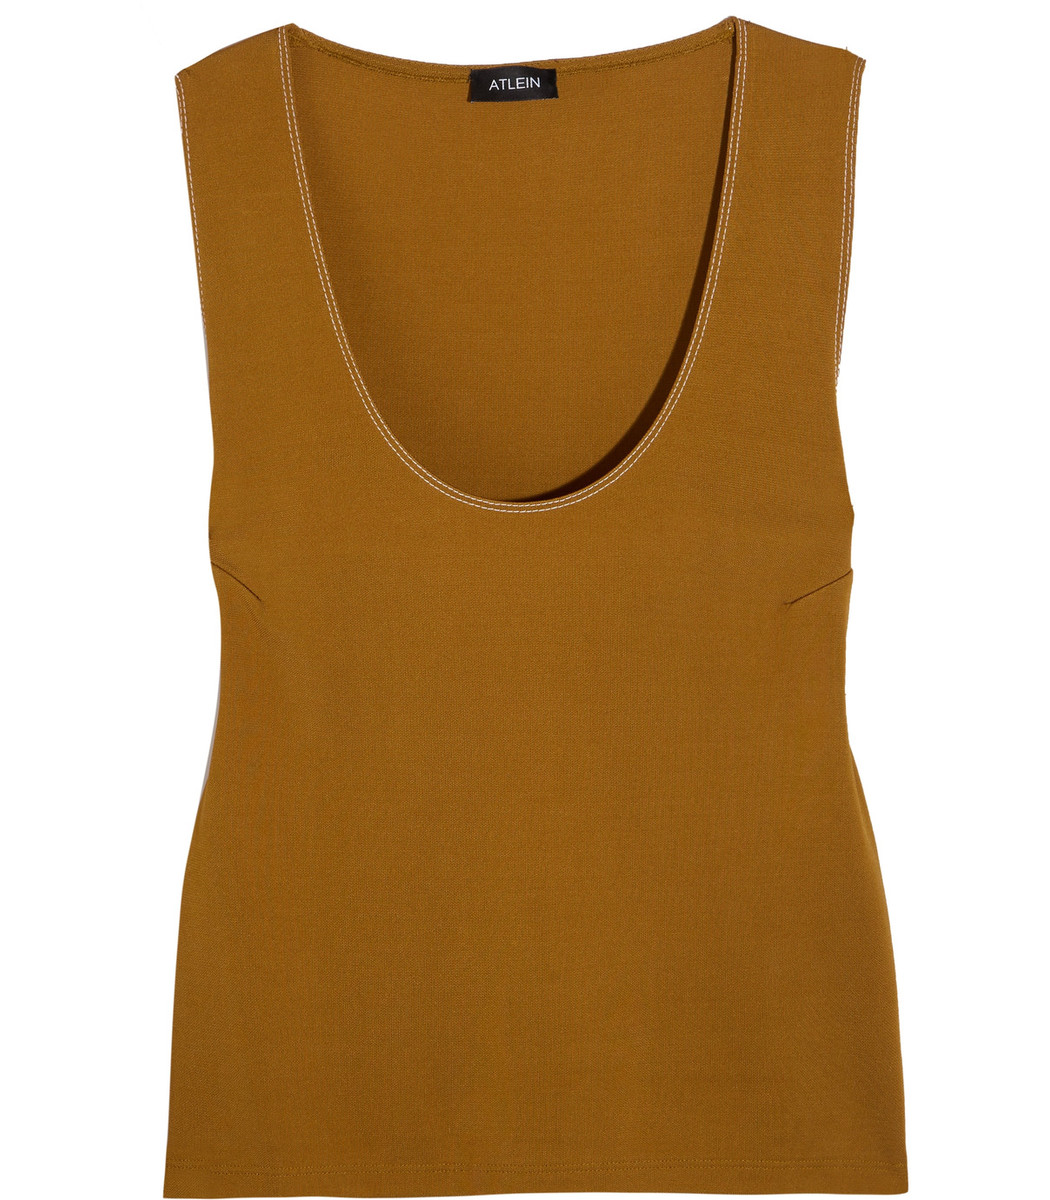 Atlein Brown Topstiched Jersey Tank